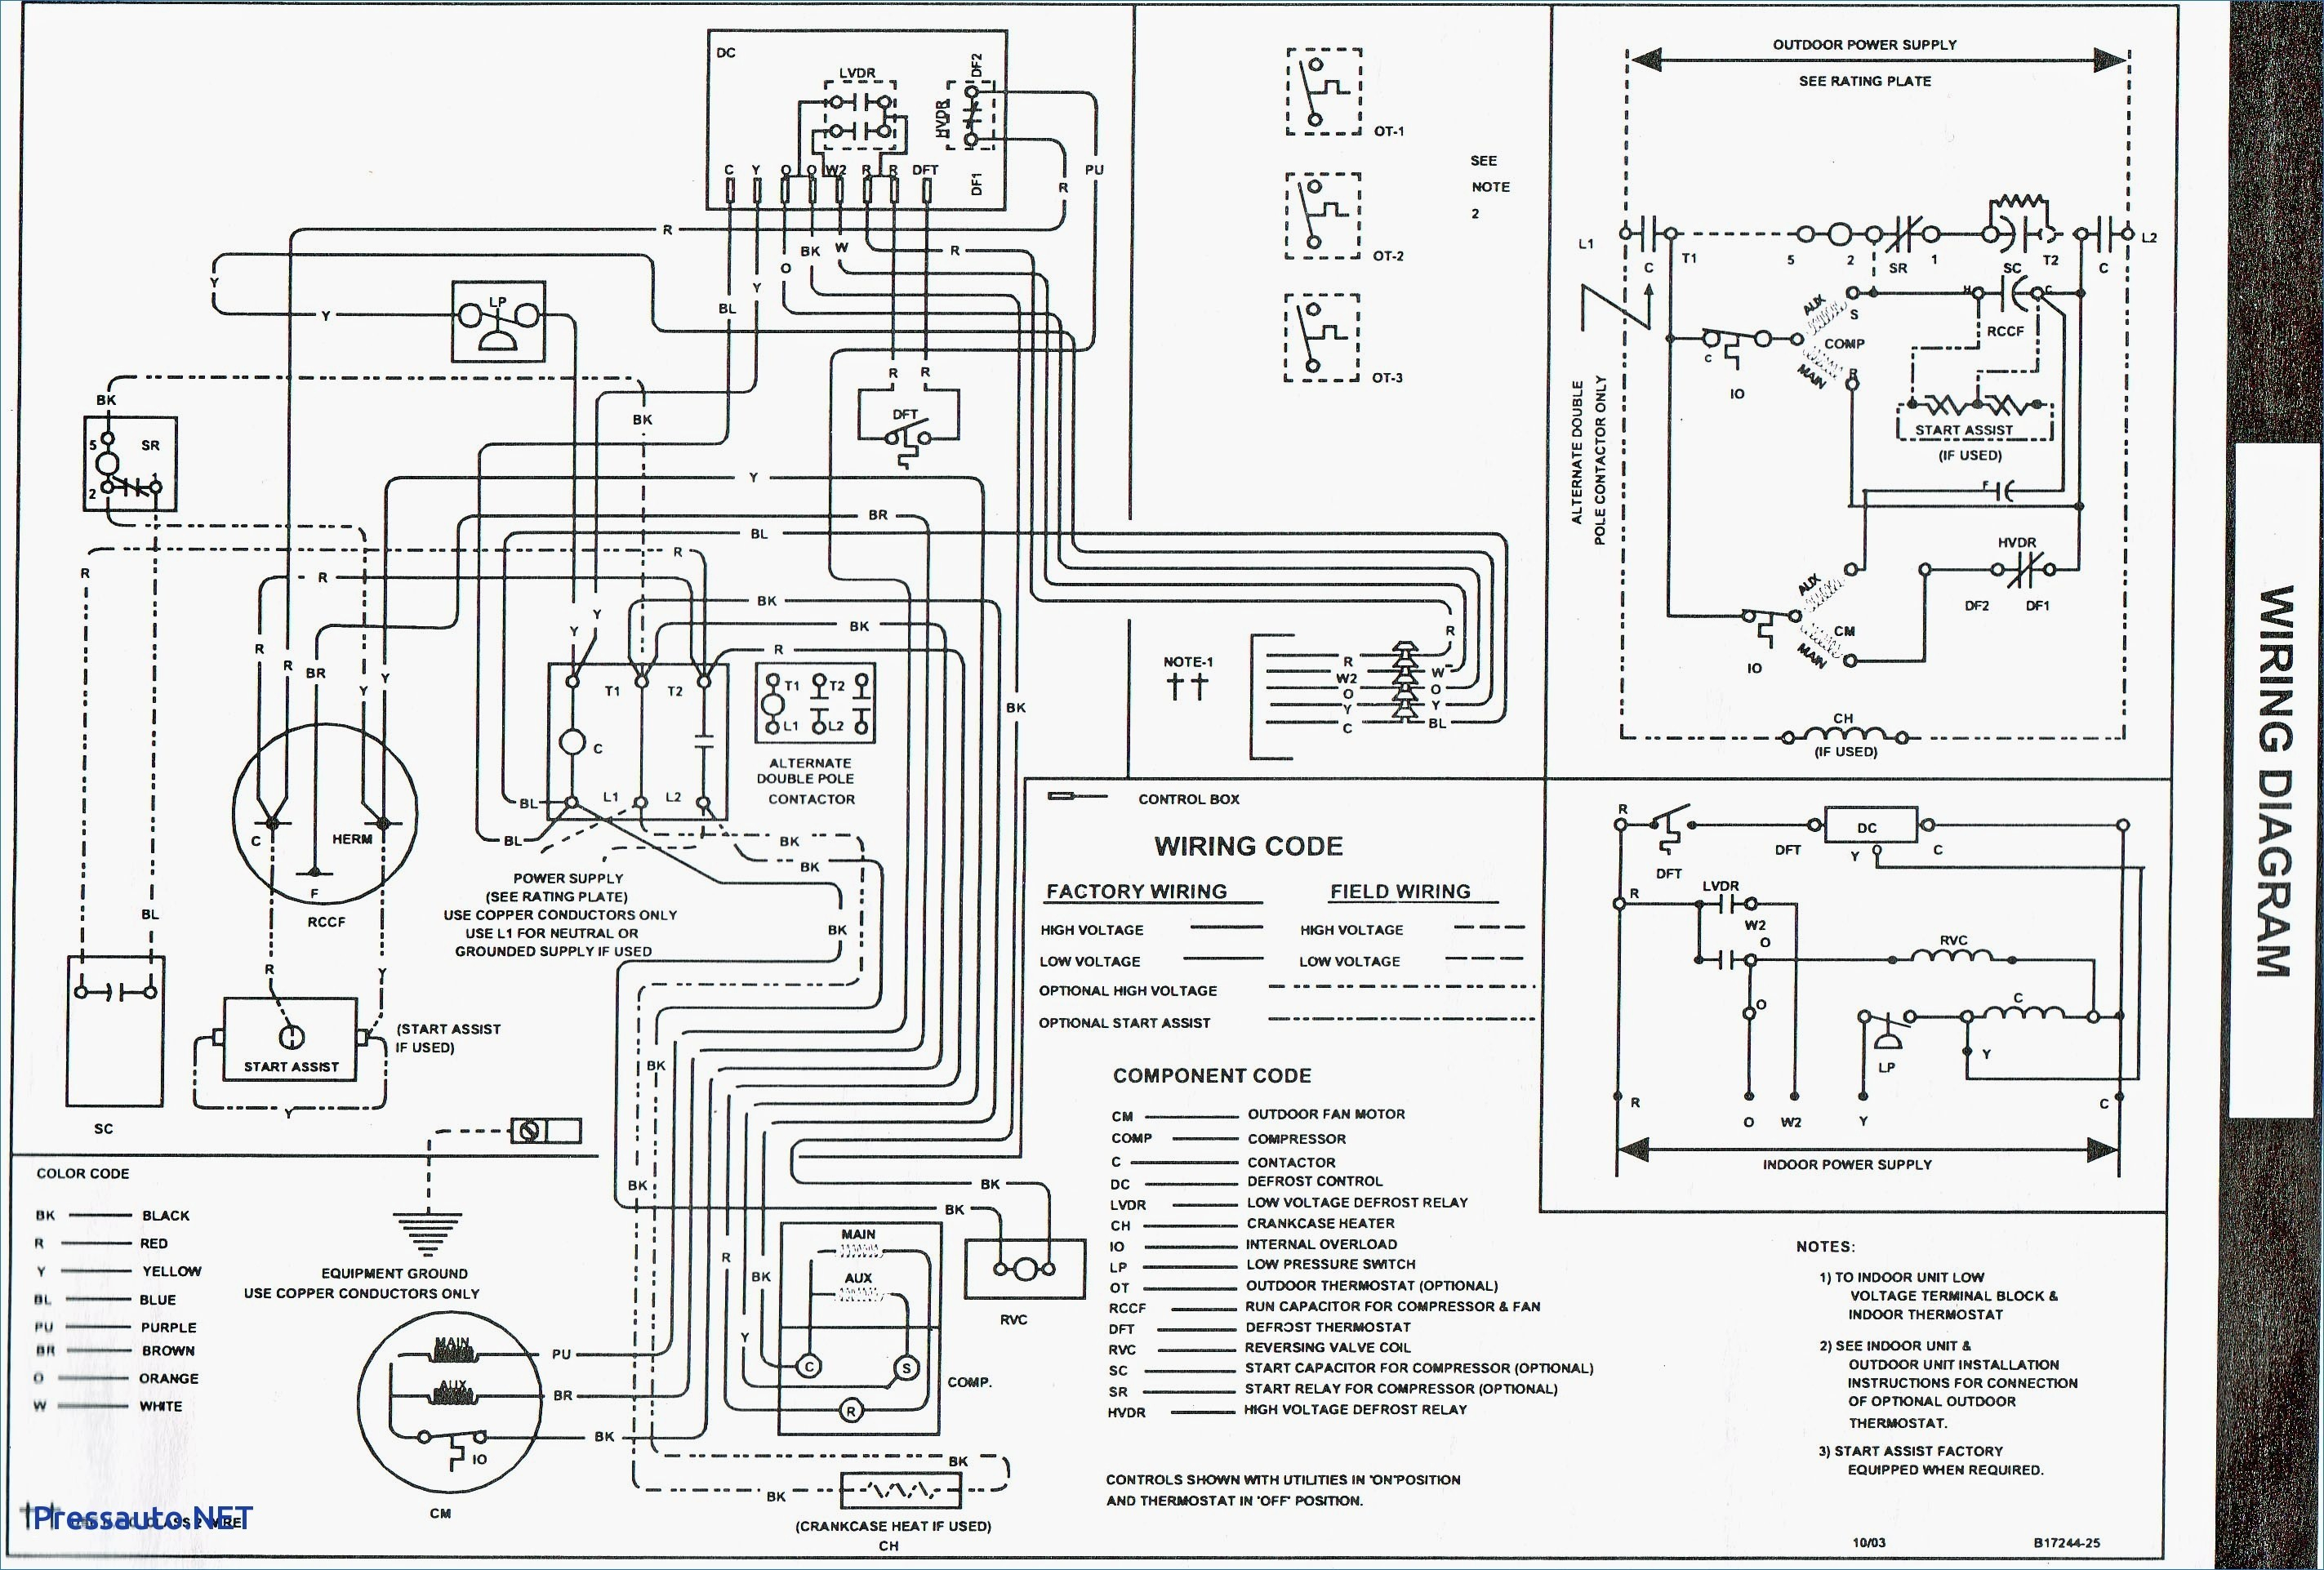 York Electric Furnace Wiring Diagram Collection | Wiring ... on